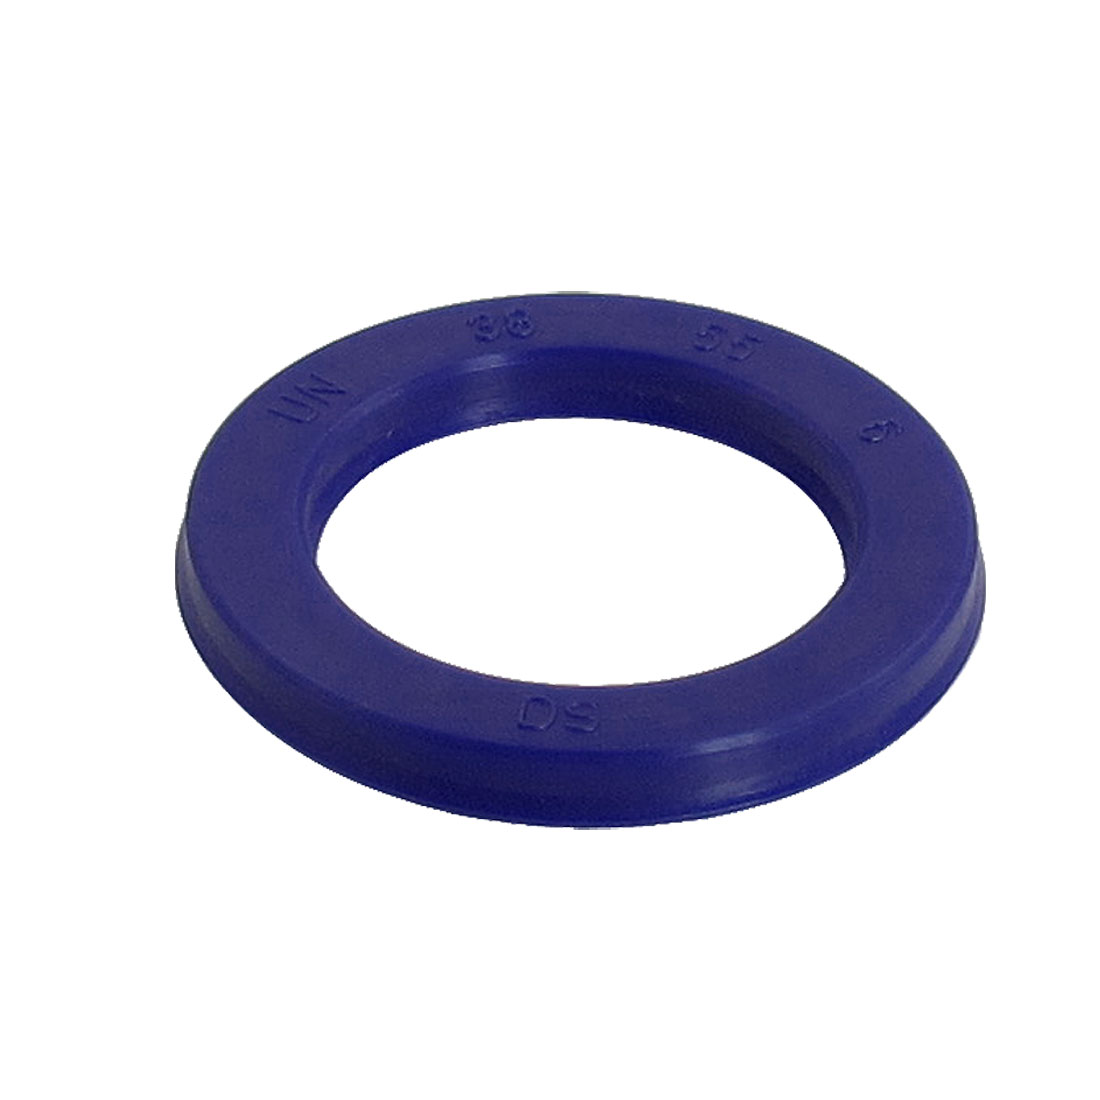 Blue PU 38mm x 55mm x 6mm Double Lip Sealing Cushion Dust Seal Ring